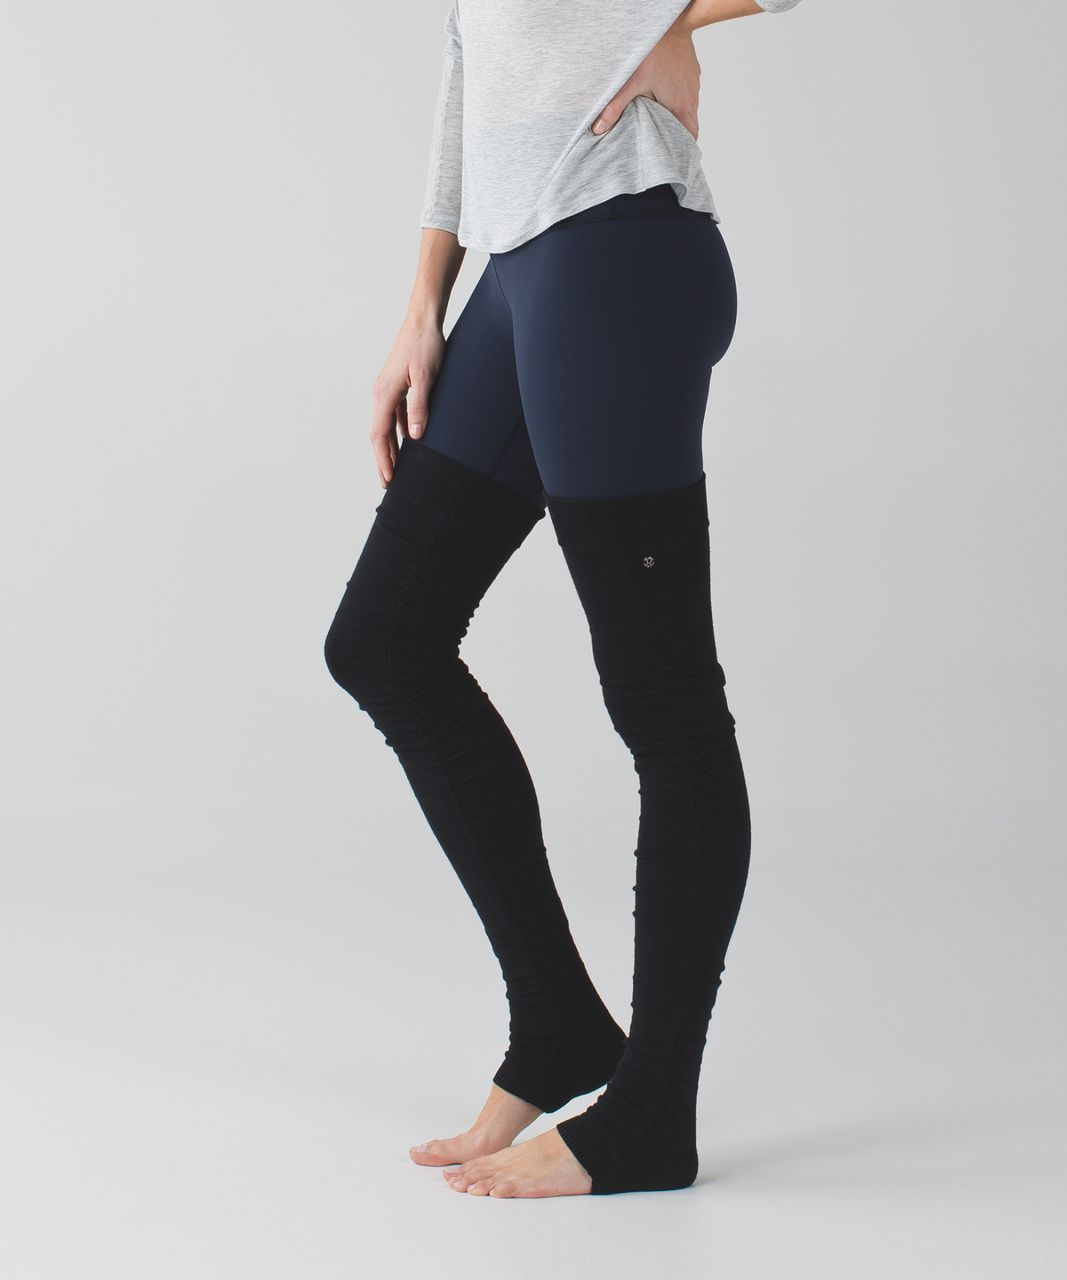 Lululemon Sheer Bliss Leg Warmer - Black